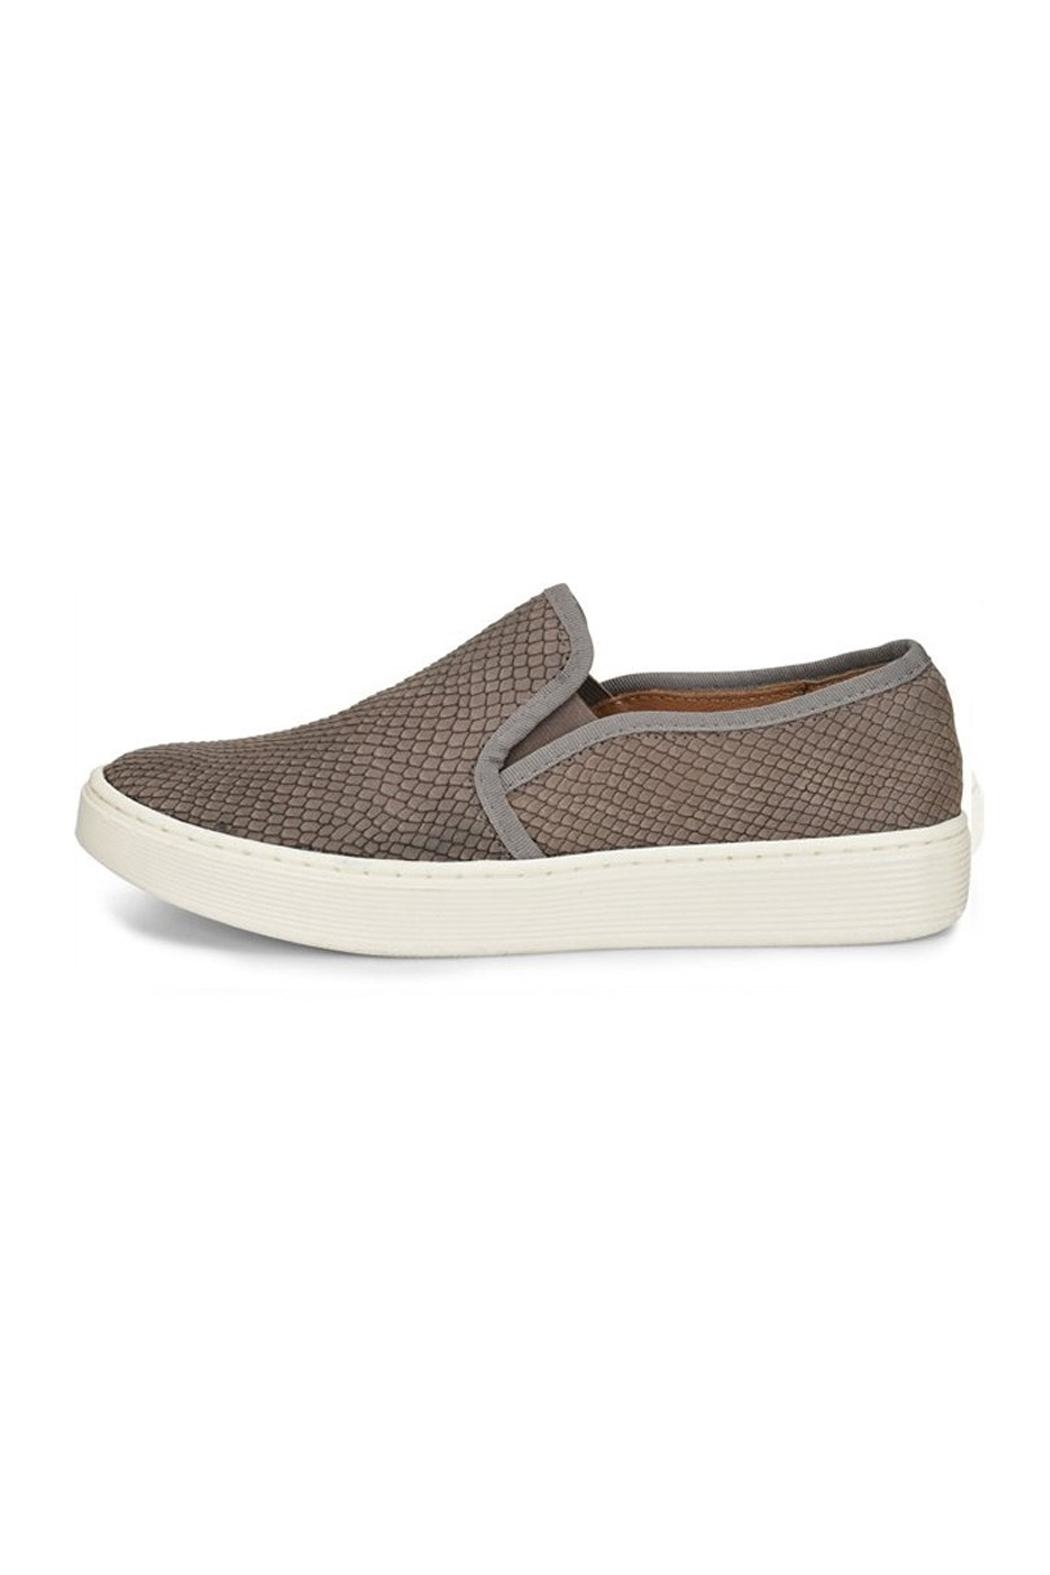 Sofft Snare Grey Sneaker - Main Image